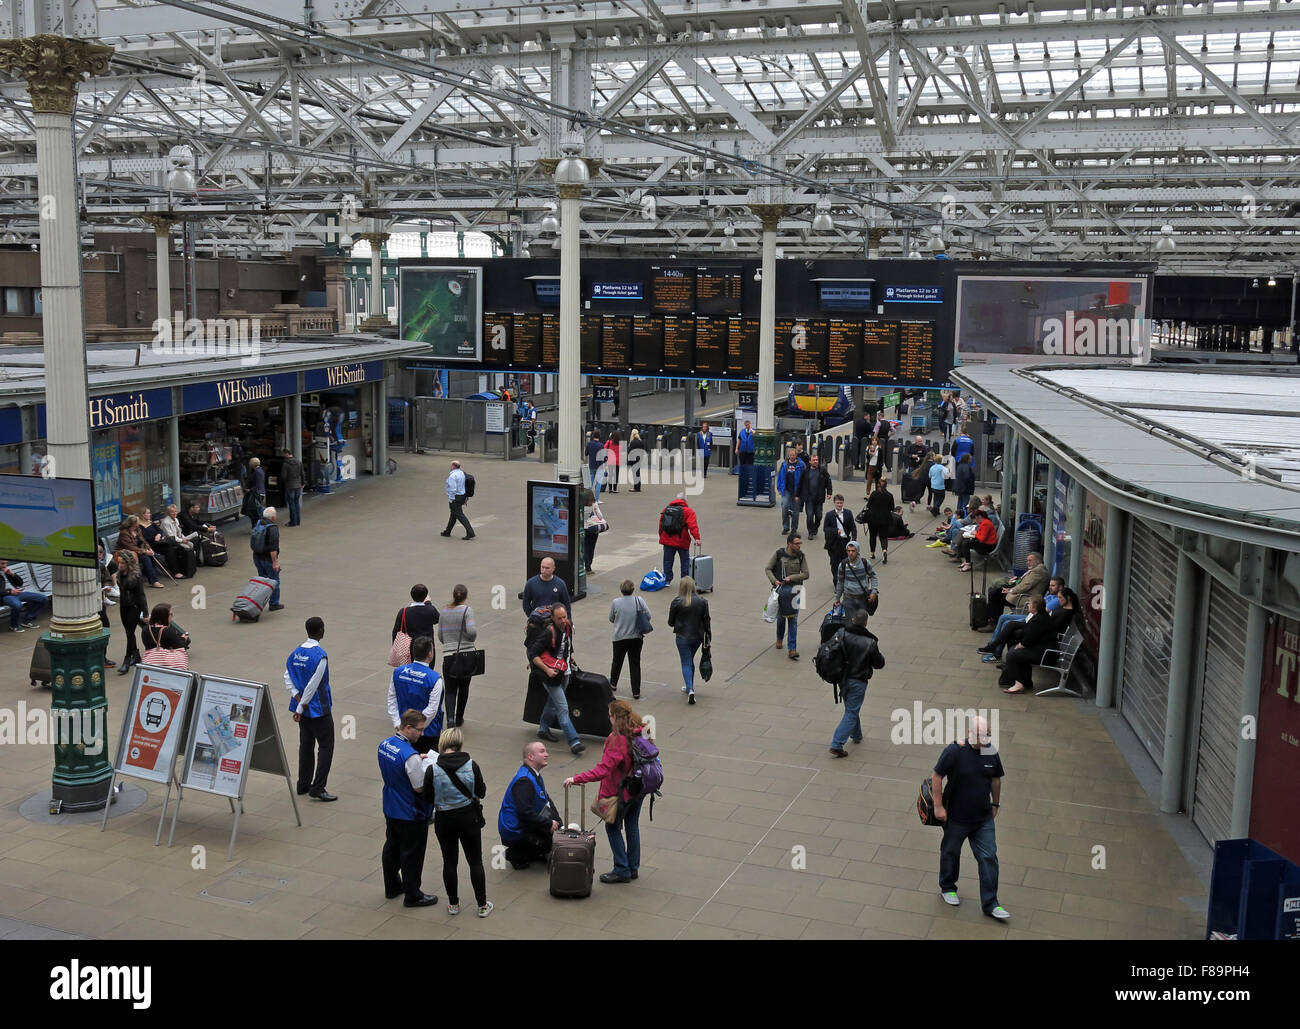 Waverley Railway Station, Edinburgh, Scotland with passengers near departure boards - Stock Image